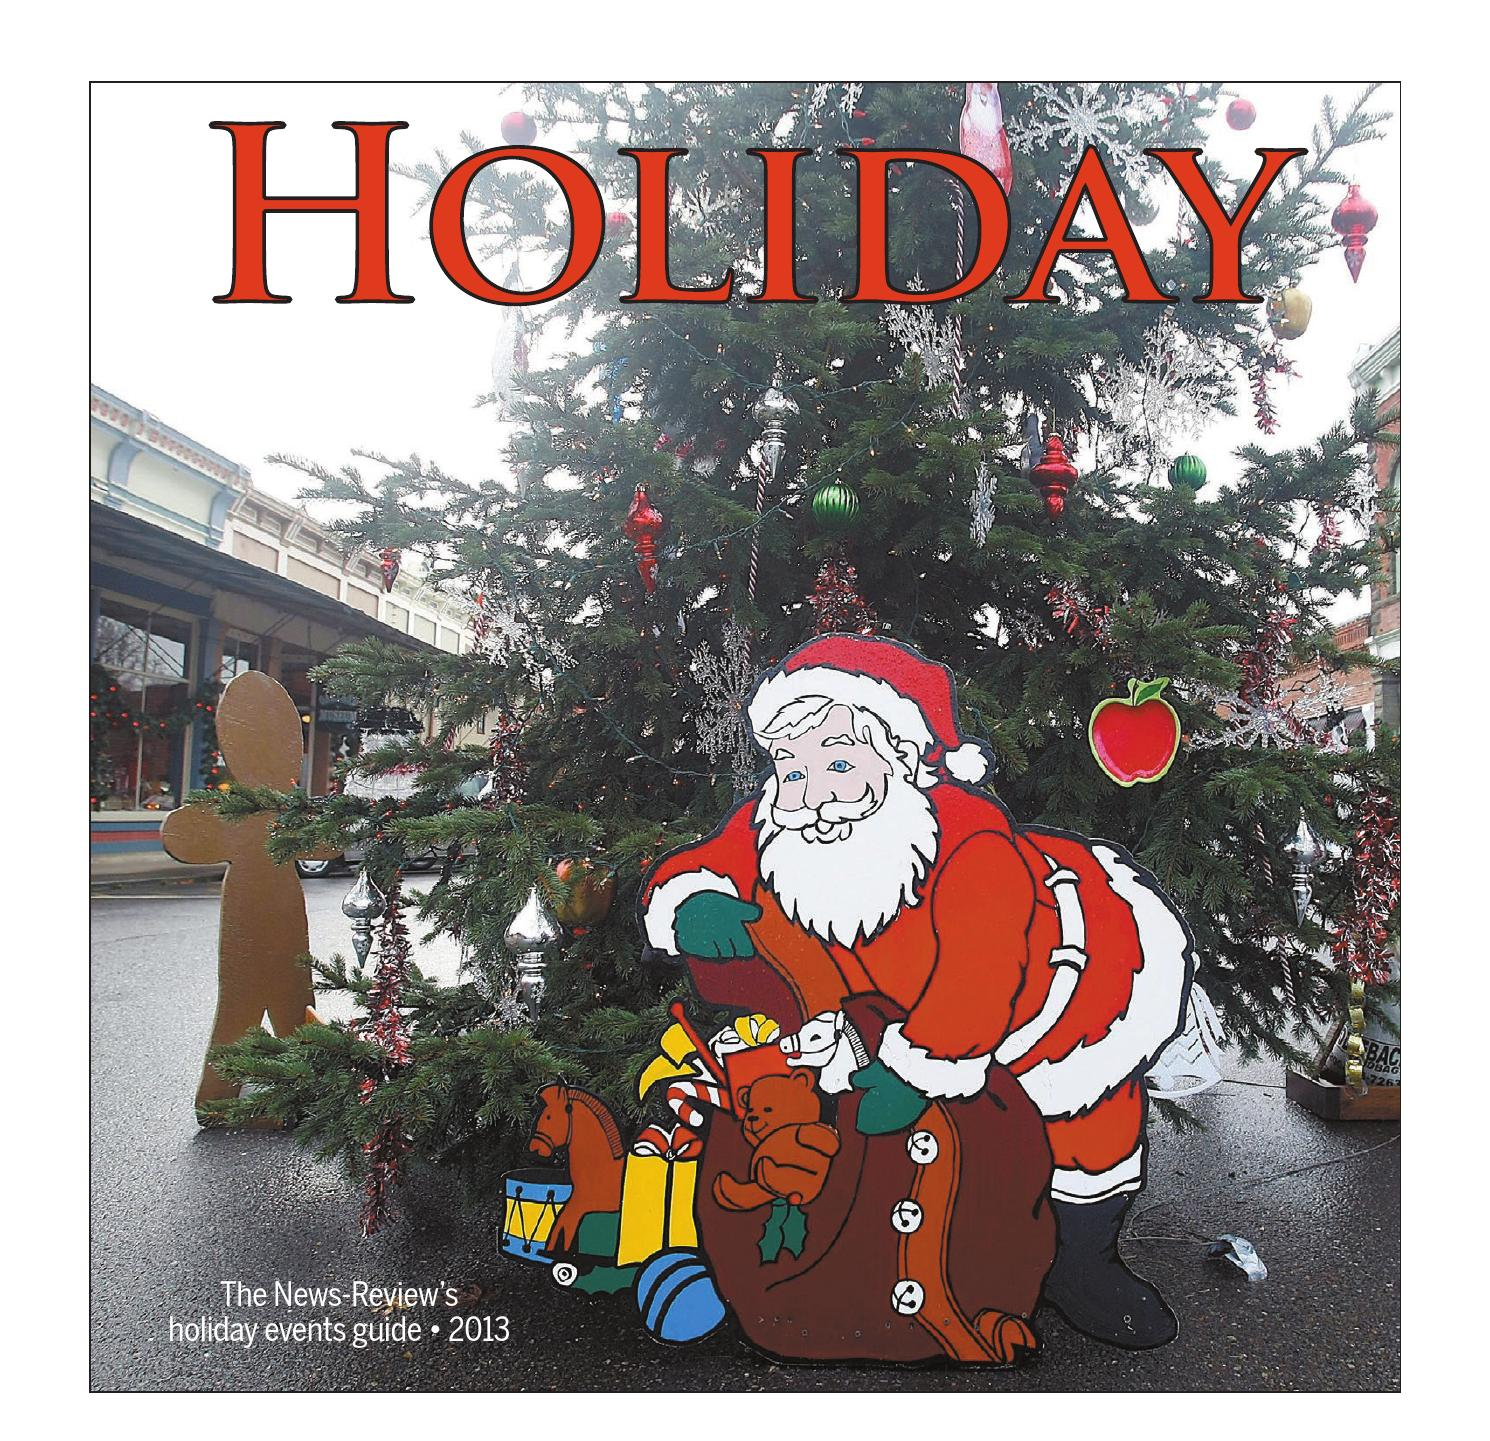 Holiday events guide by News Review issuu